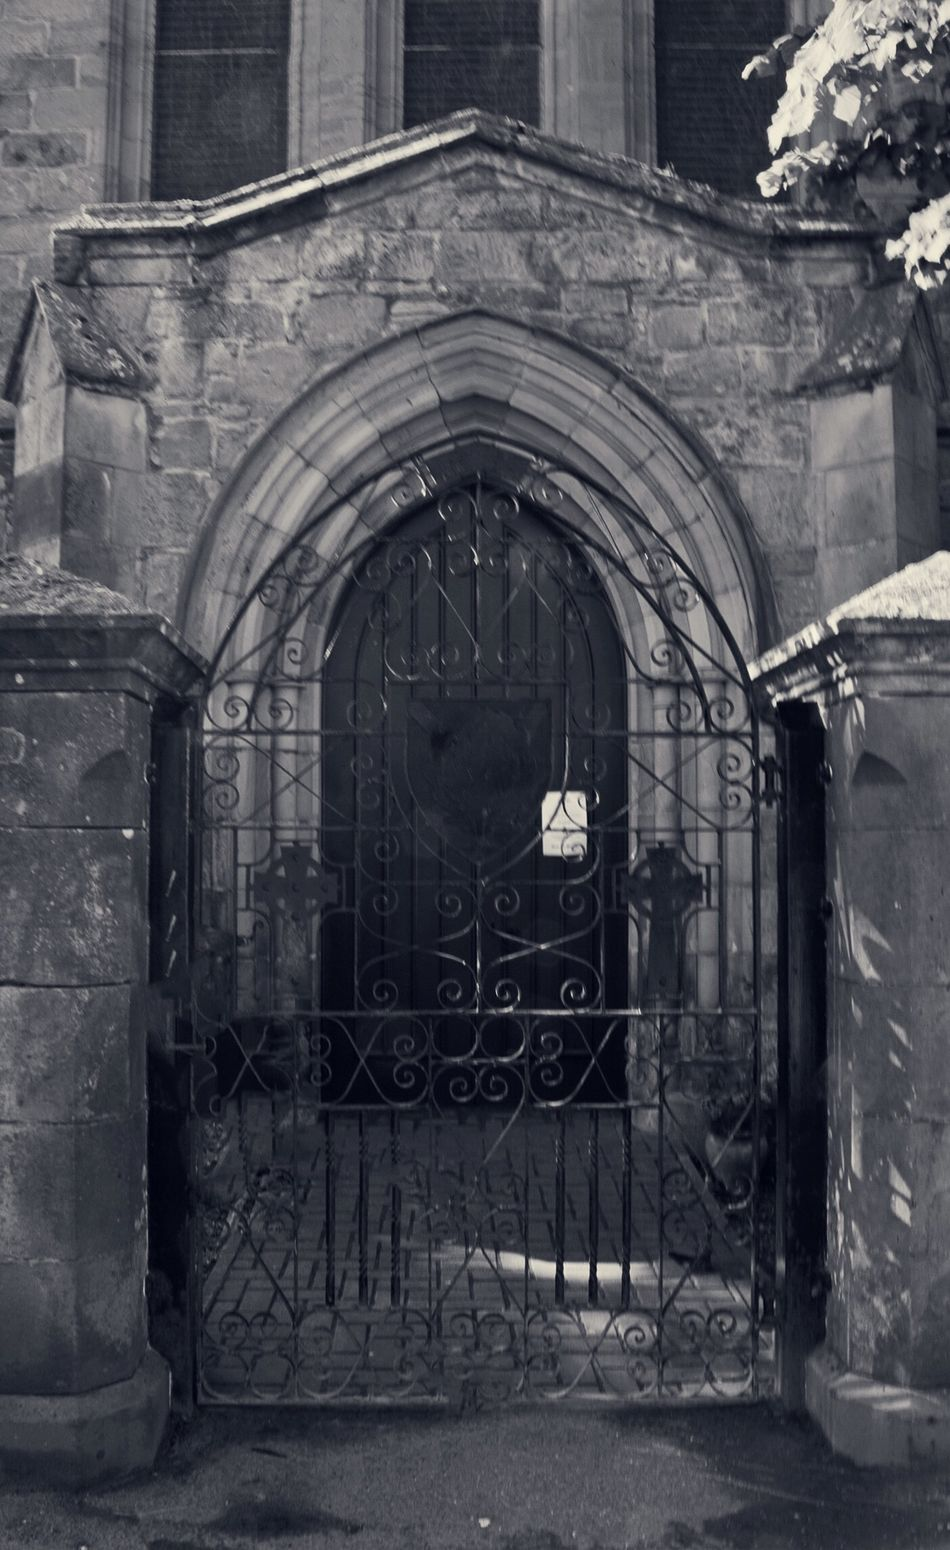 The side door of the Dornoch Cathedral, Dornoch, Scotland. On tour with @rabbies_tours Rabbie's Tours Arched Wooden Door Iron Gates Dornoch Scotland Cathedrals  Scottish North